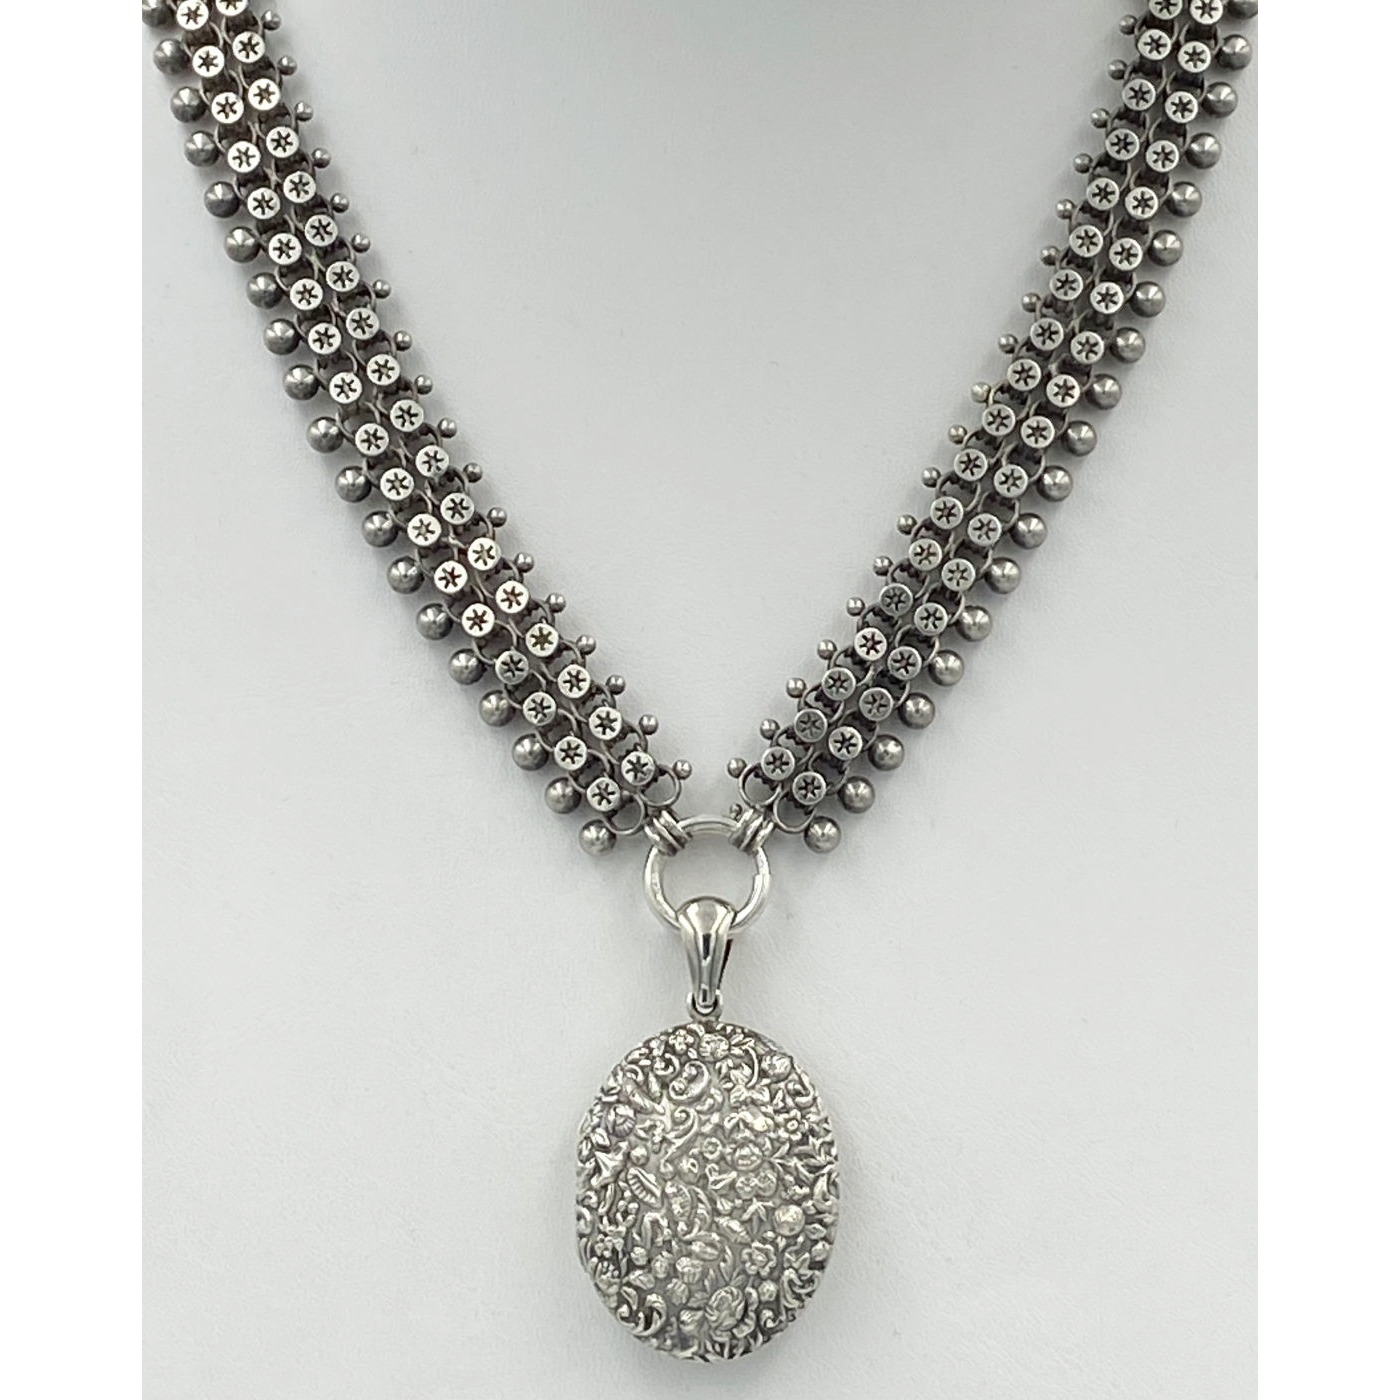 Wonderfully Wide Beaded, Double Cannonballs, Star Link Antique English Silver Chain - Chain Only